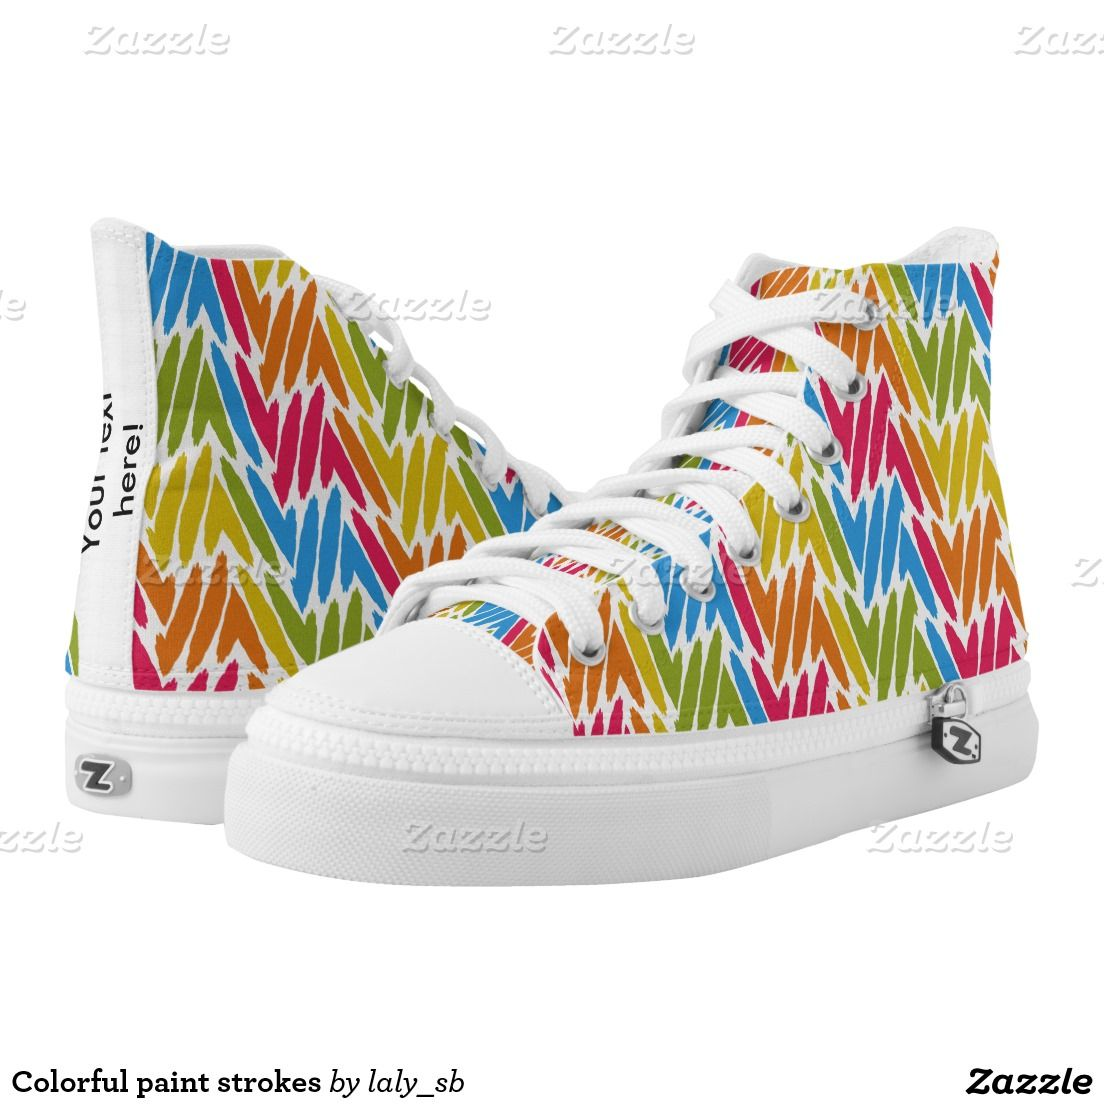 Colorful paint strokes printed shoes